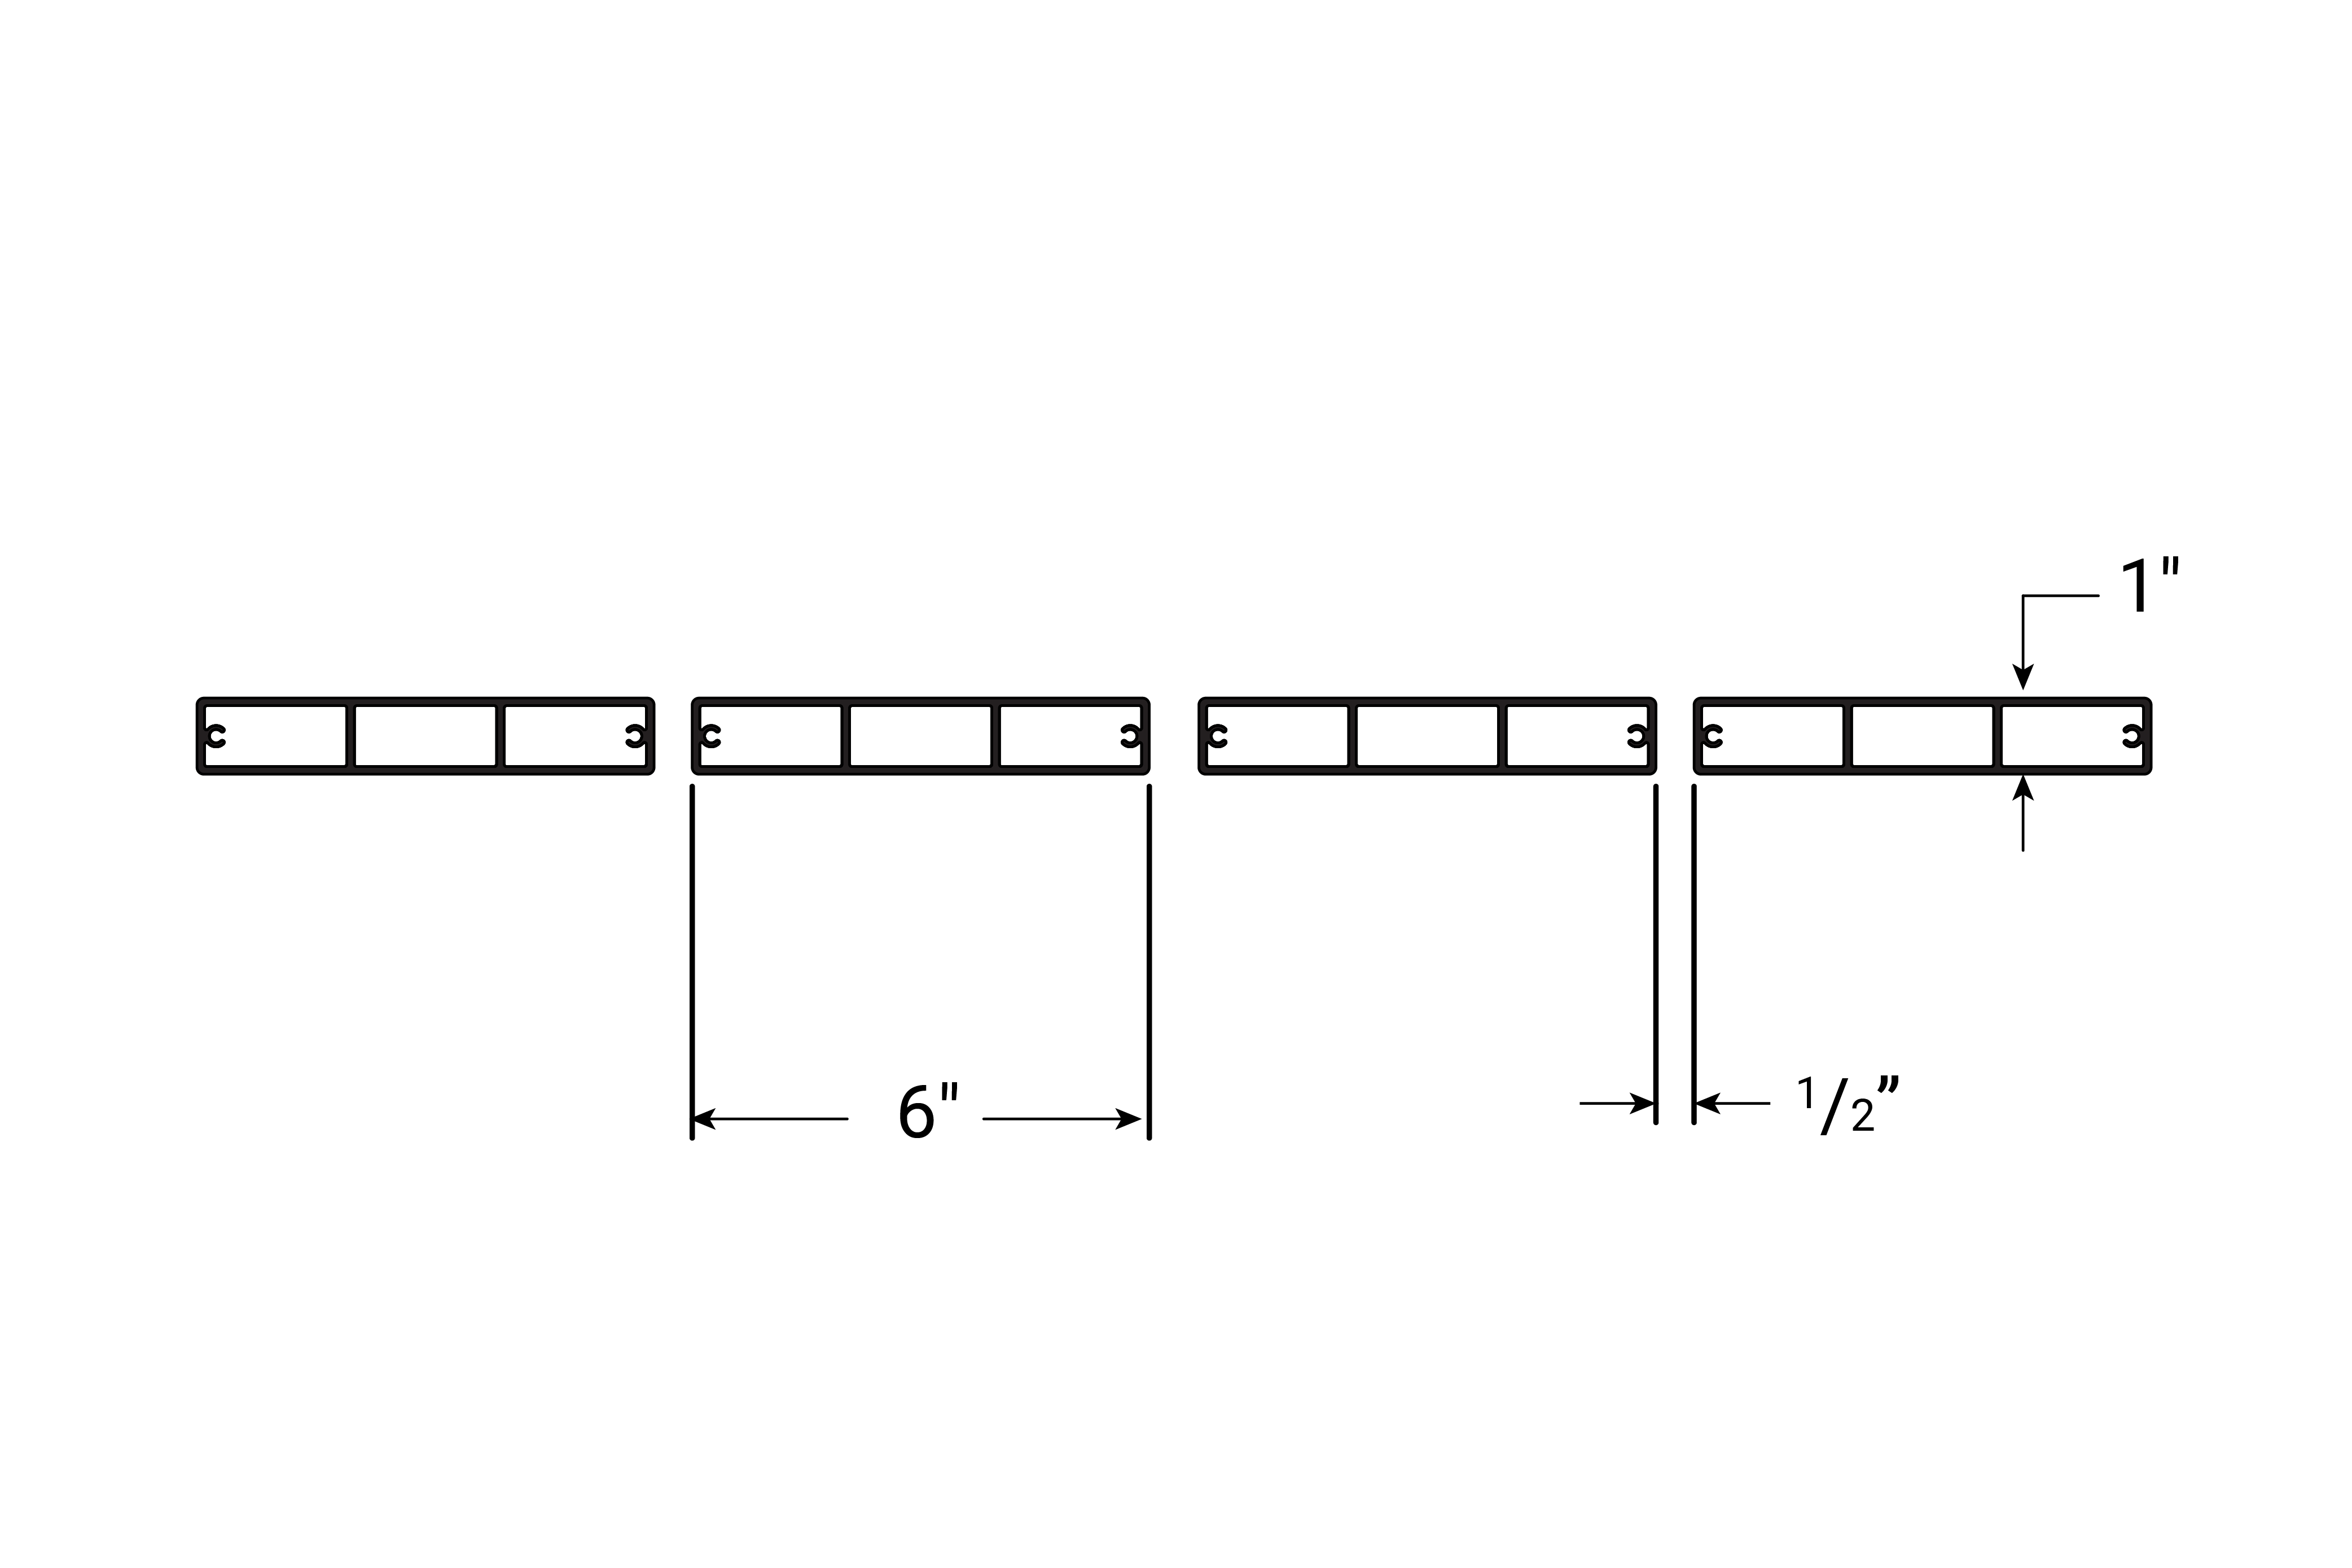 Cross-section for 6 inch and 4 inch slat wall